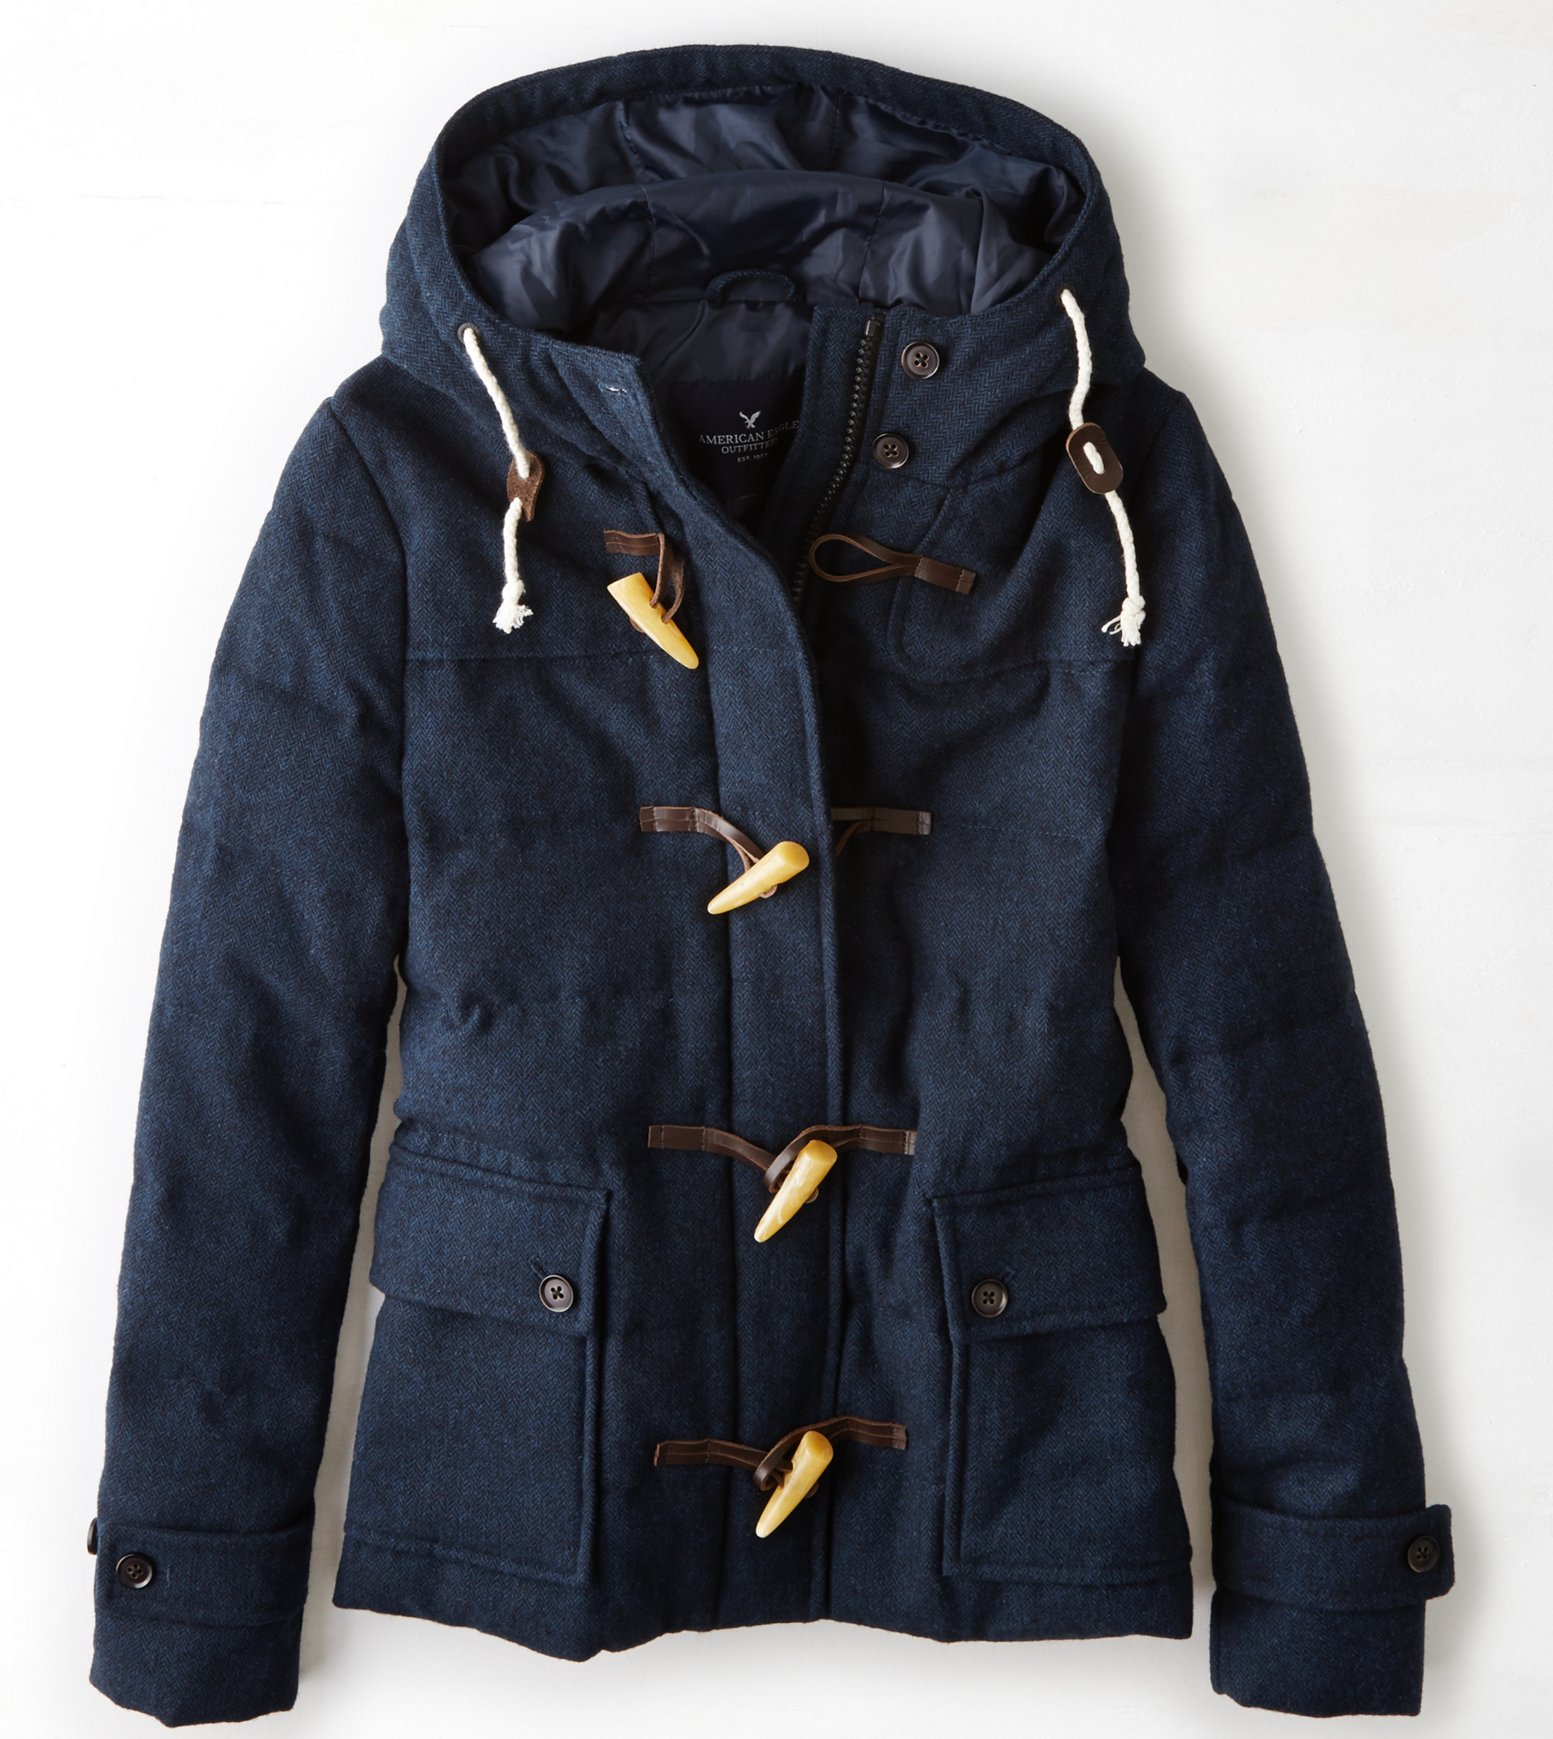 American Eagle Outfitters Jackets & Coats | American Eagle Blue Winter Ski Coat Small | Color: Blue | Size: S This Is A Great Coat For The Slopes! Has Vents On The Sides That Can Be Unzipped.